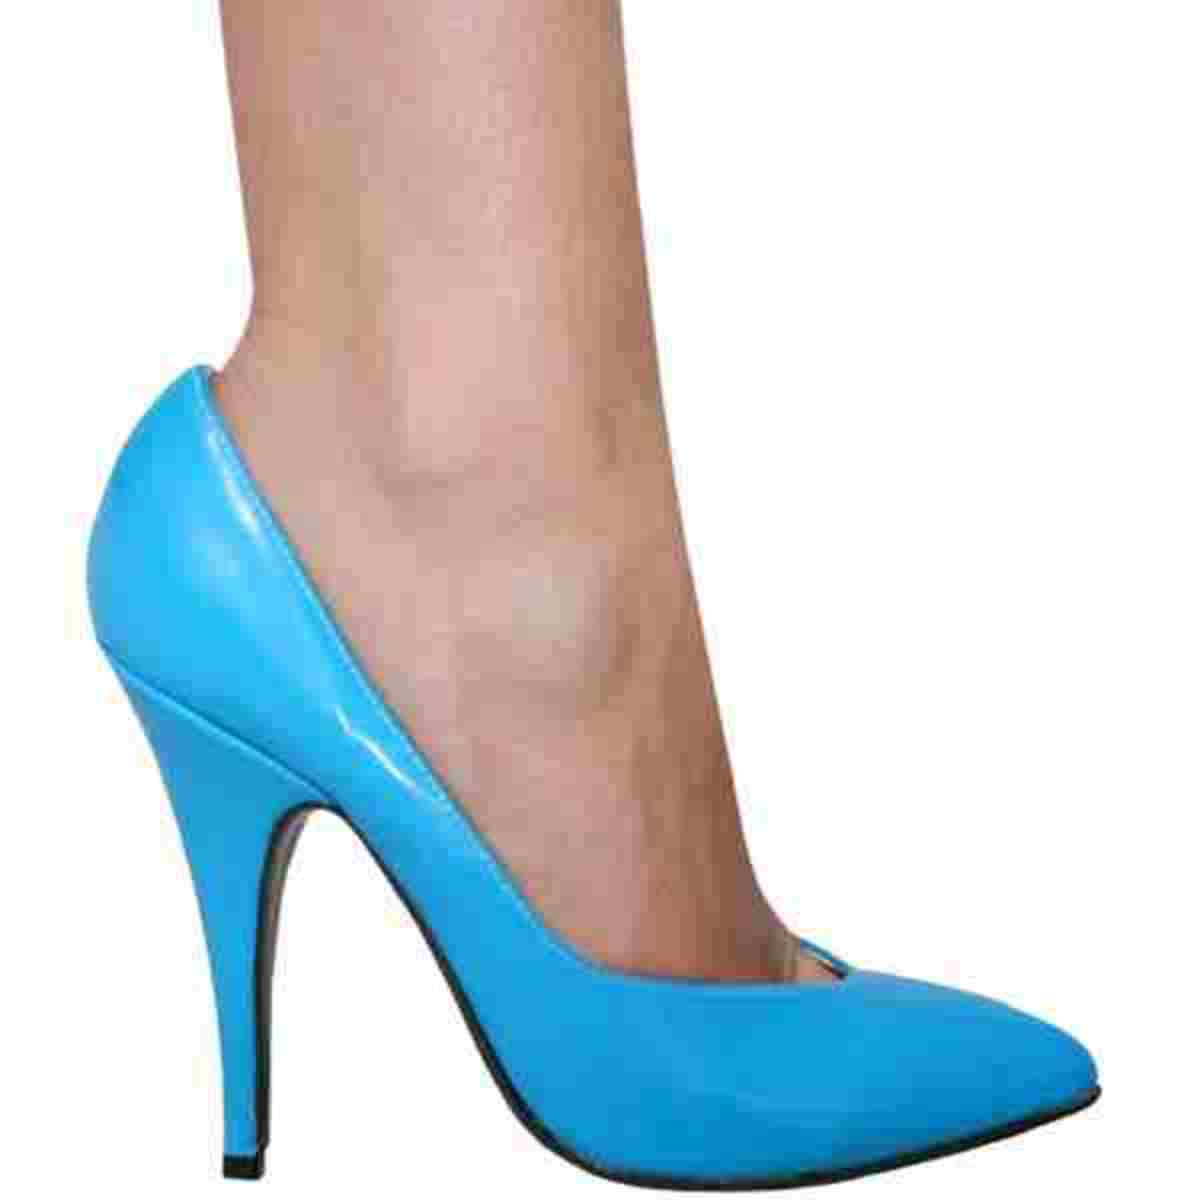 High Heels are a not good for healthy feet.